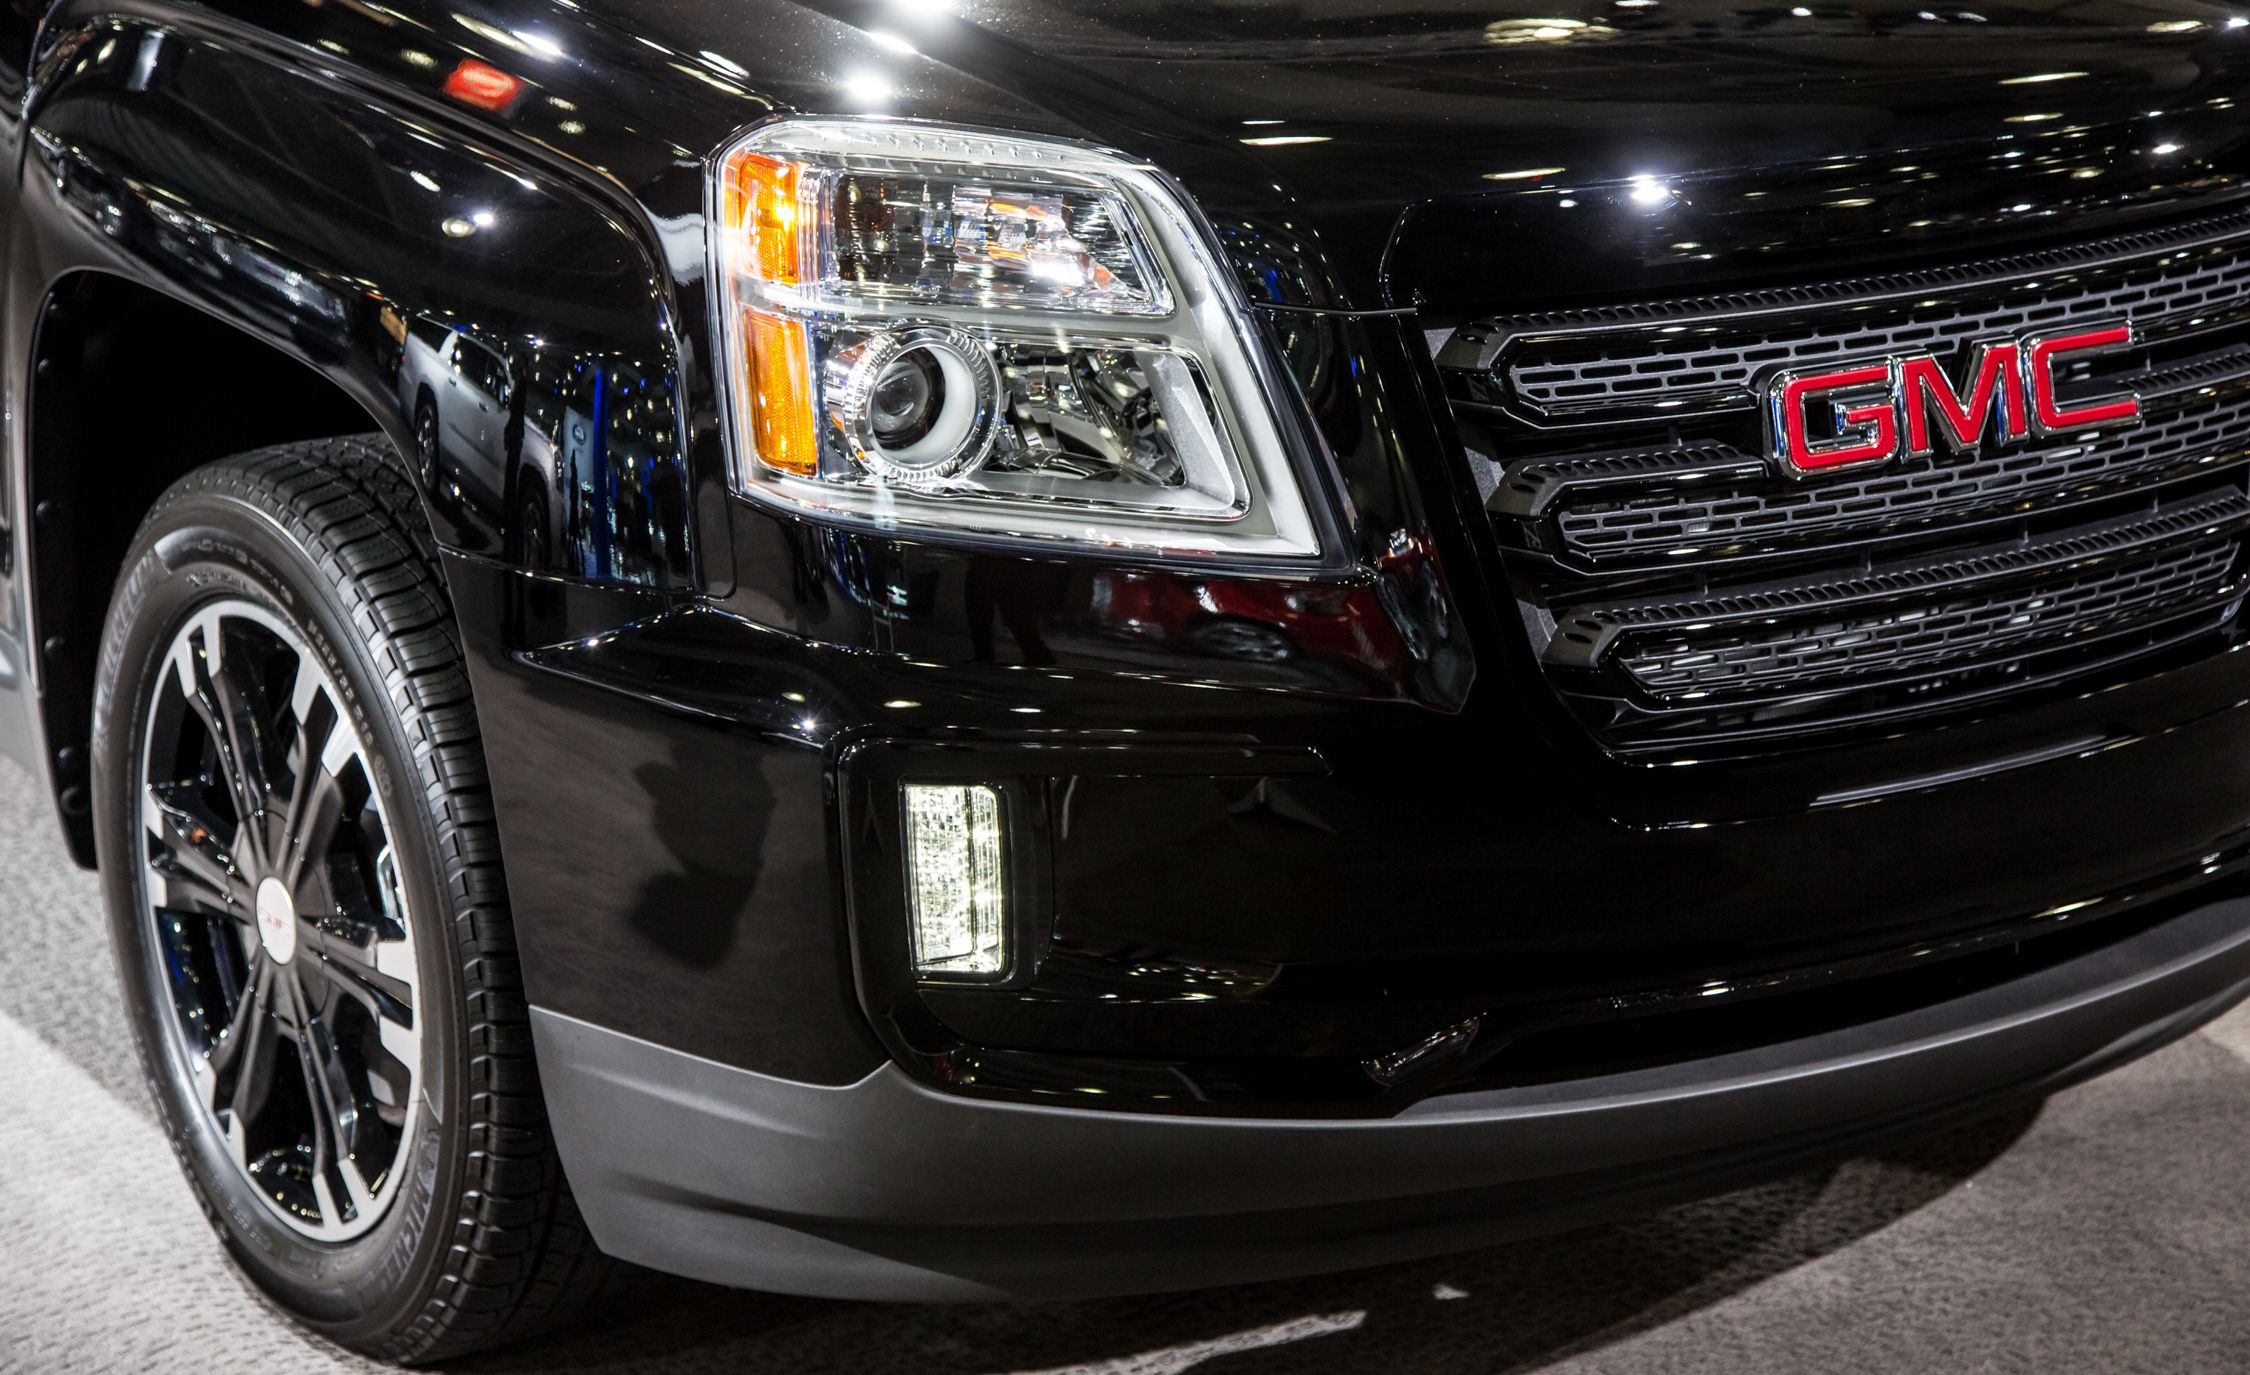 2017 Gmc Terrain Adds Blacked Out Nightfall Edition News Car And Driver